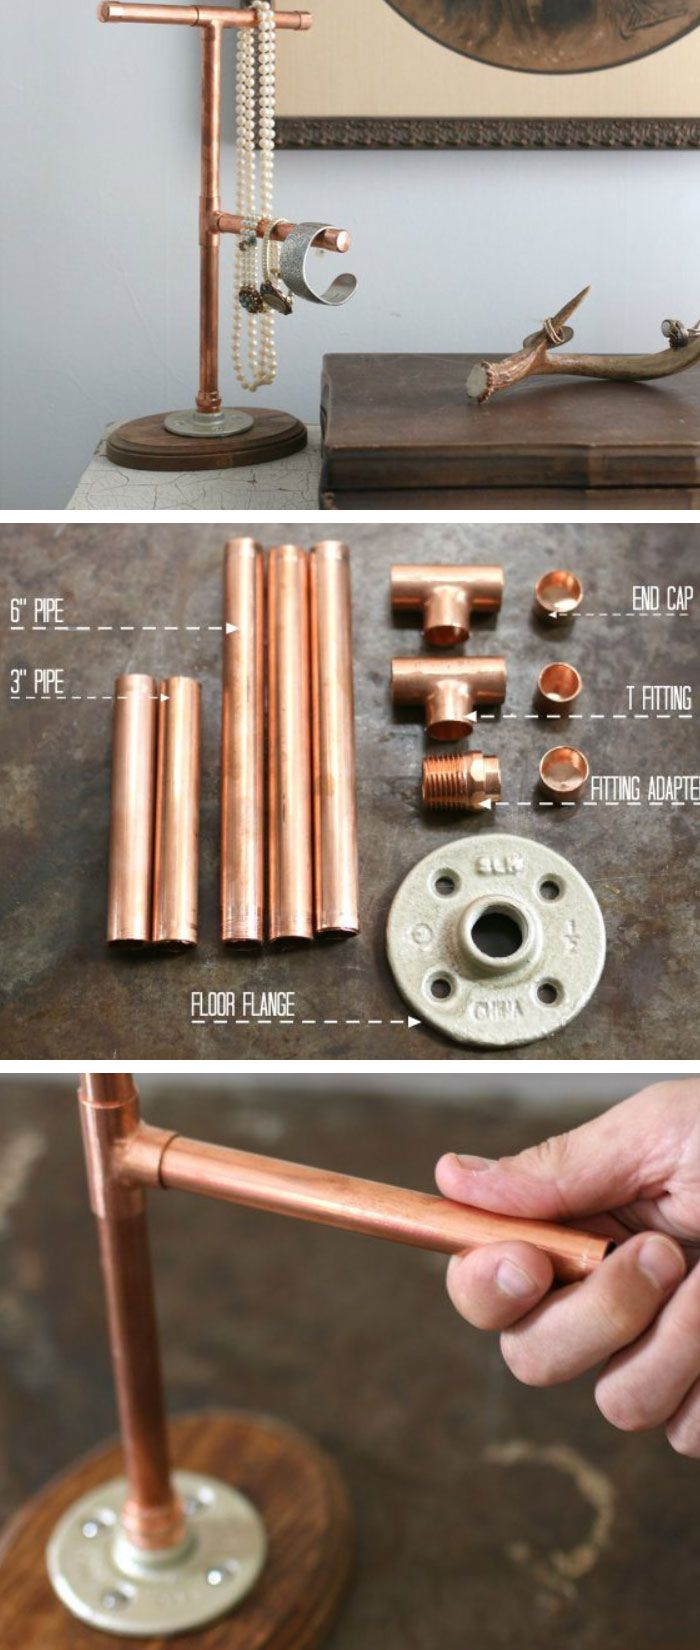 Copper Jewelry Display | DIY Home Decor Ideas on a Budget | DIY Home Decorating on a Budget